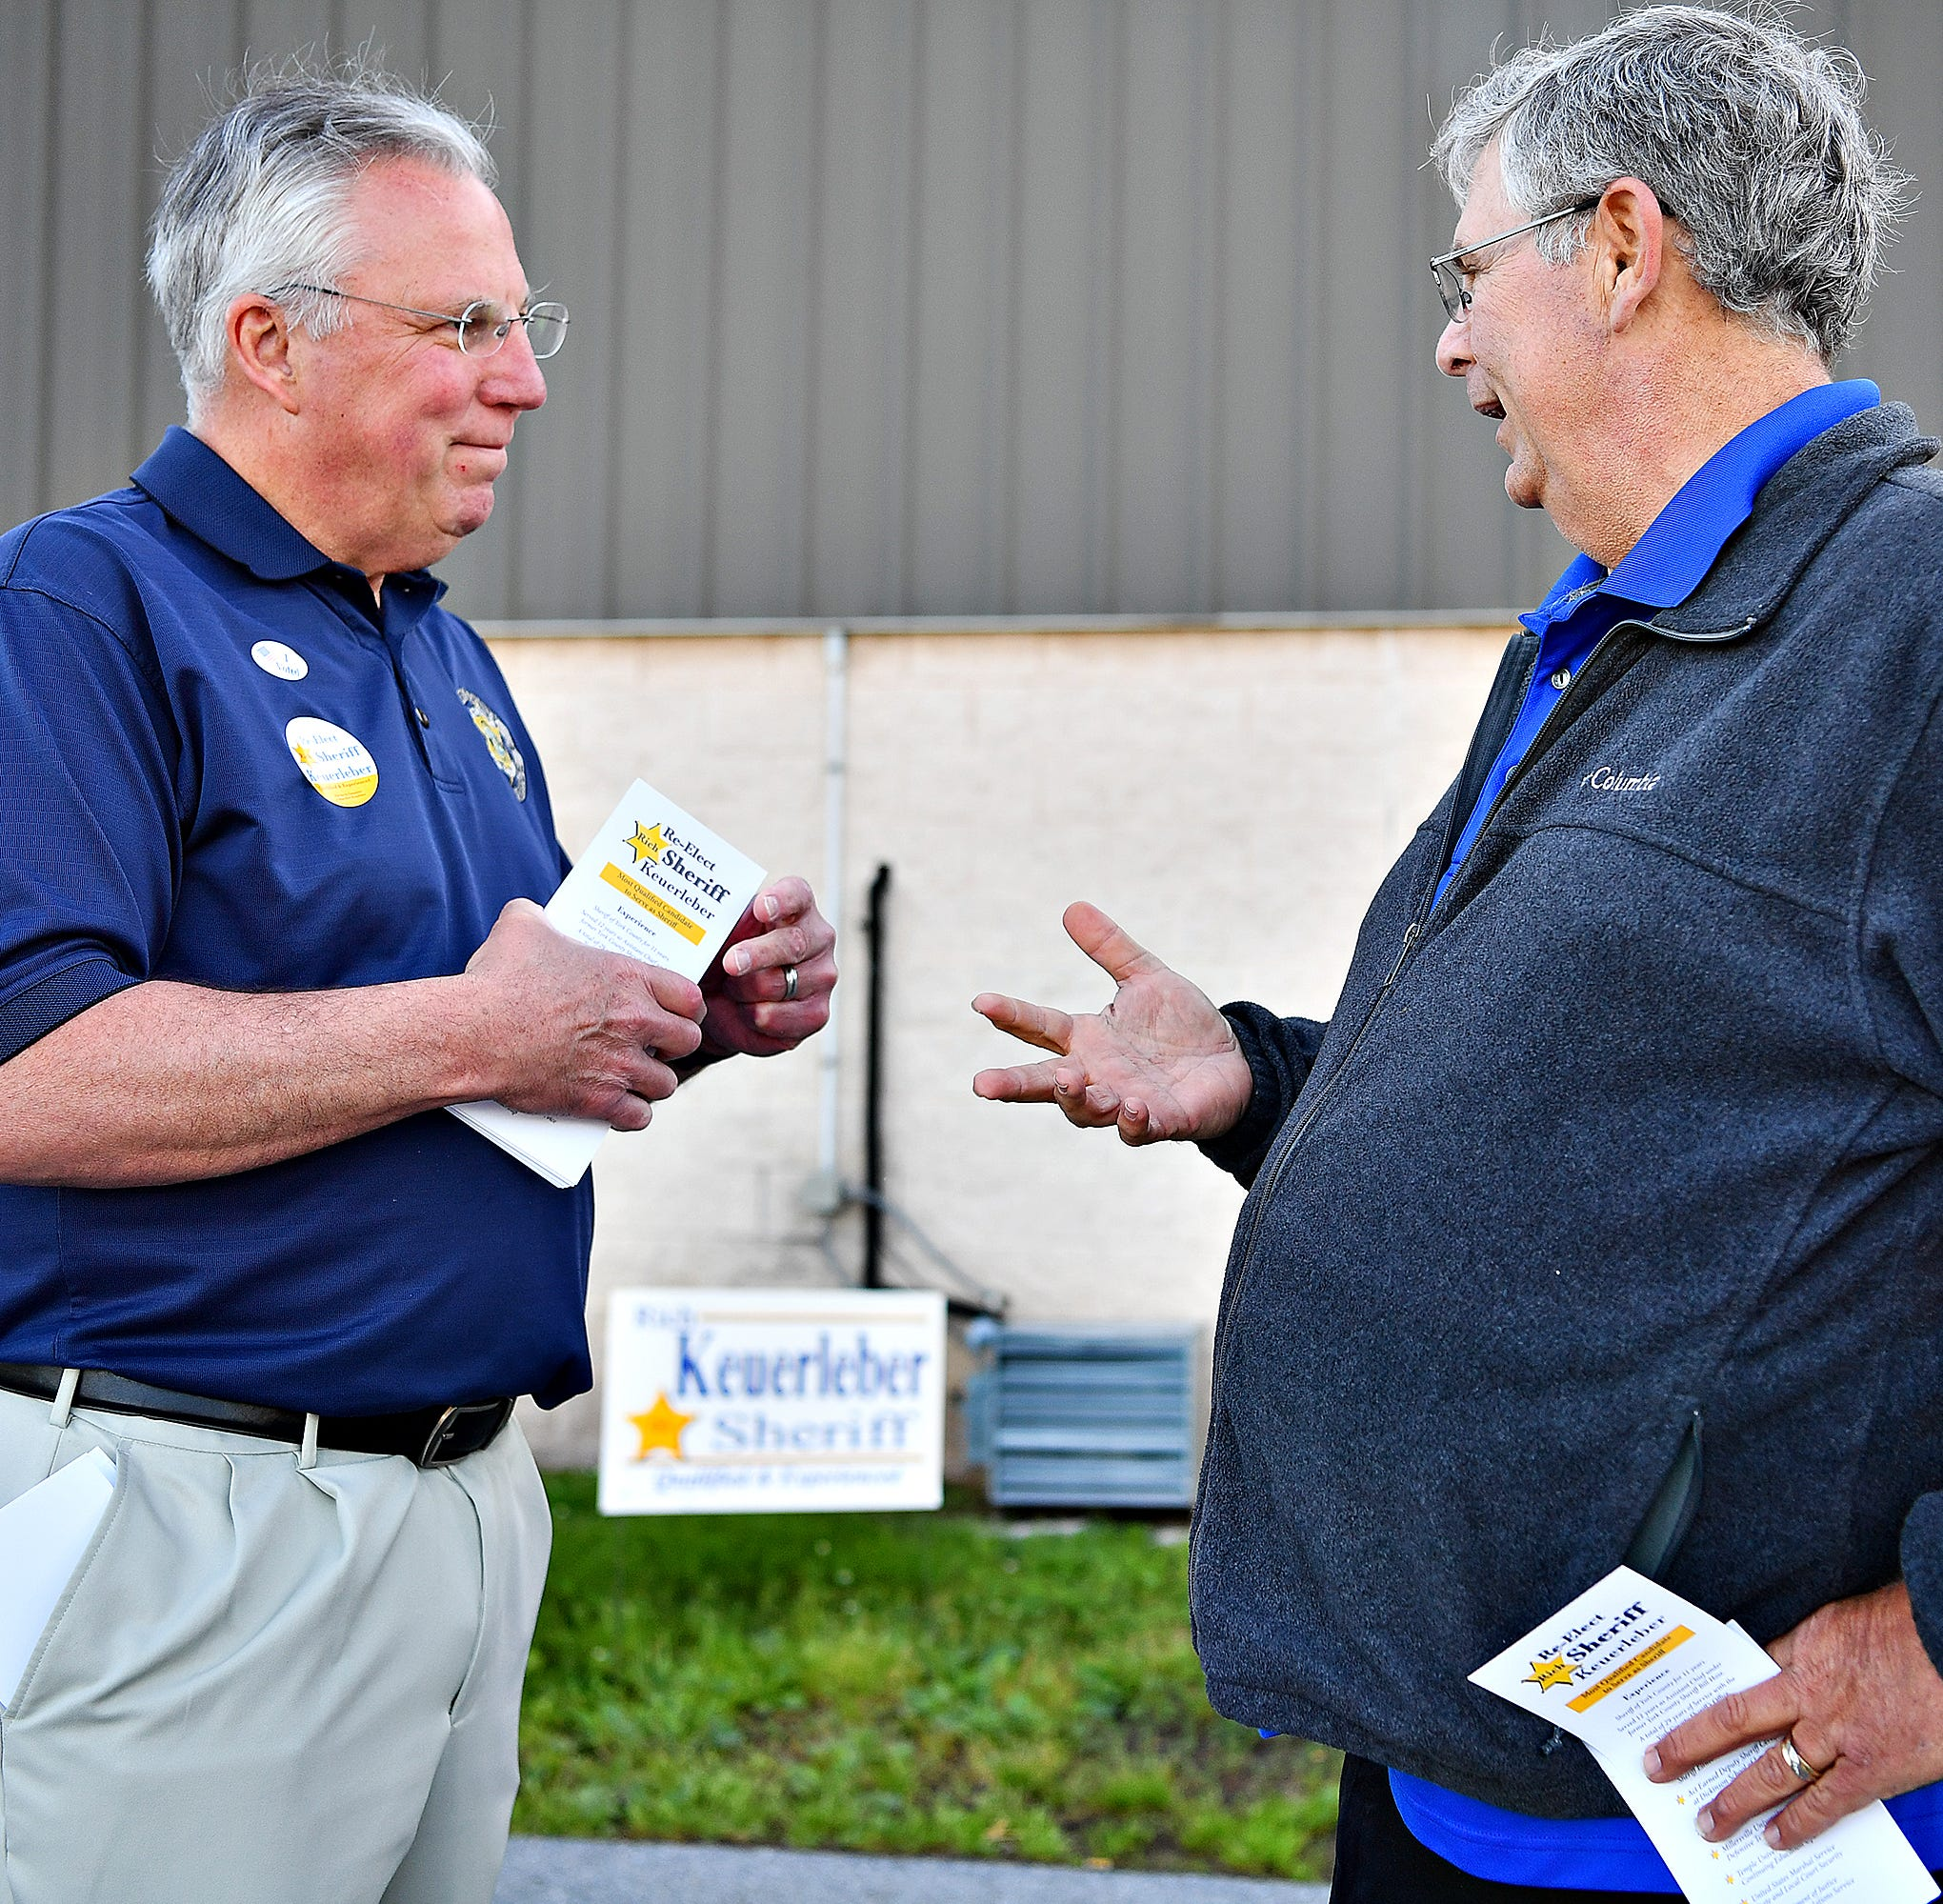 Sheriff Keuerleber survives tough primary, but rematch might loom